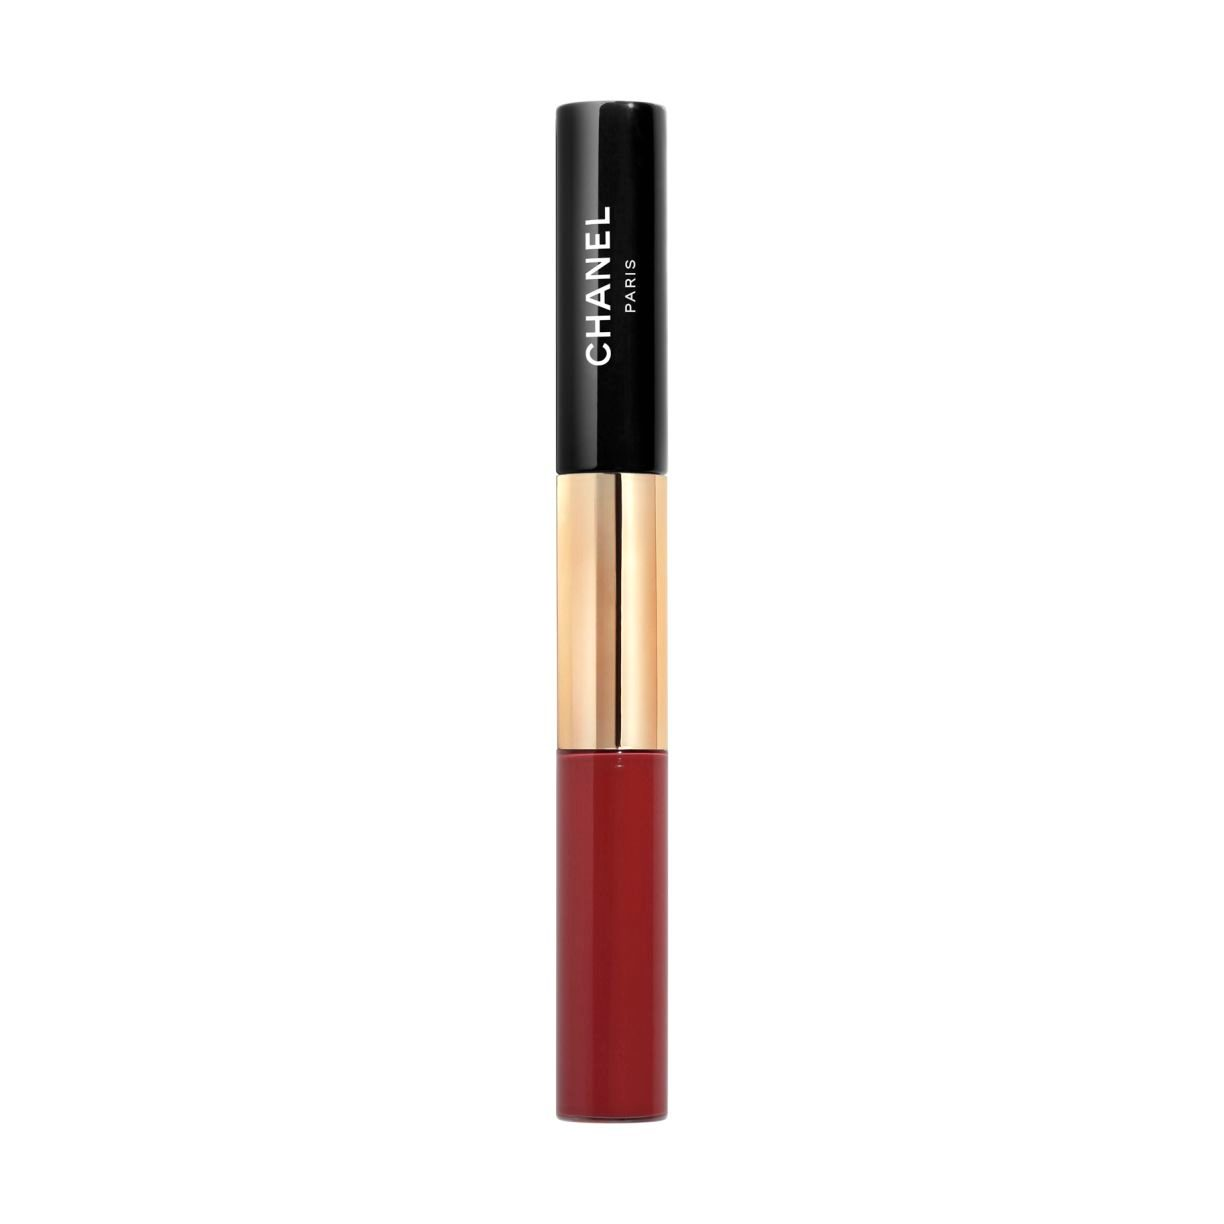 ROUGE DOUBLE INTENSITÉ ULTRA WEAR LIP COLOUR